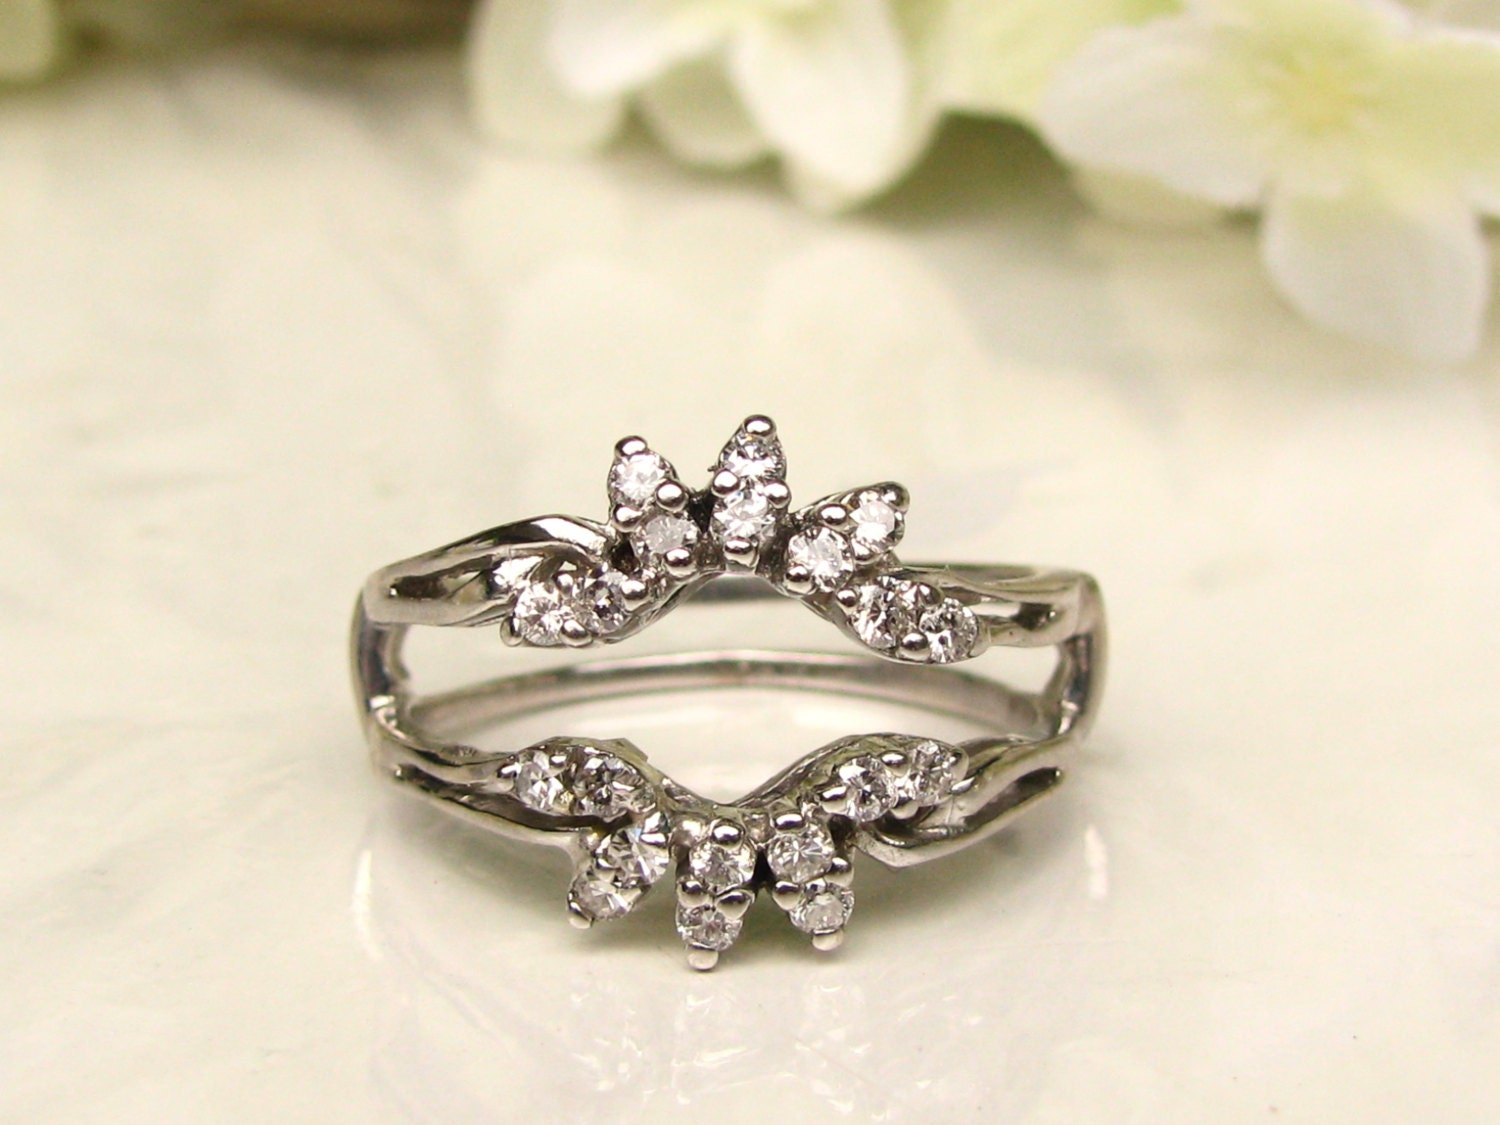 vintage diamond enhancer diamond wedding ring floral. Black Bedroom Furniture Sets. Home Design Ideas